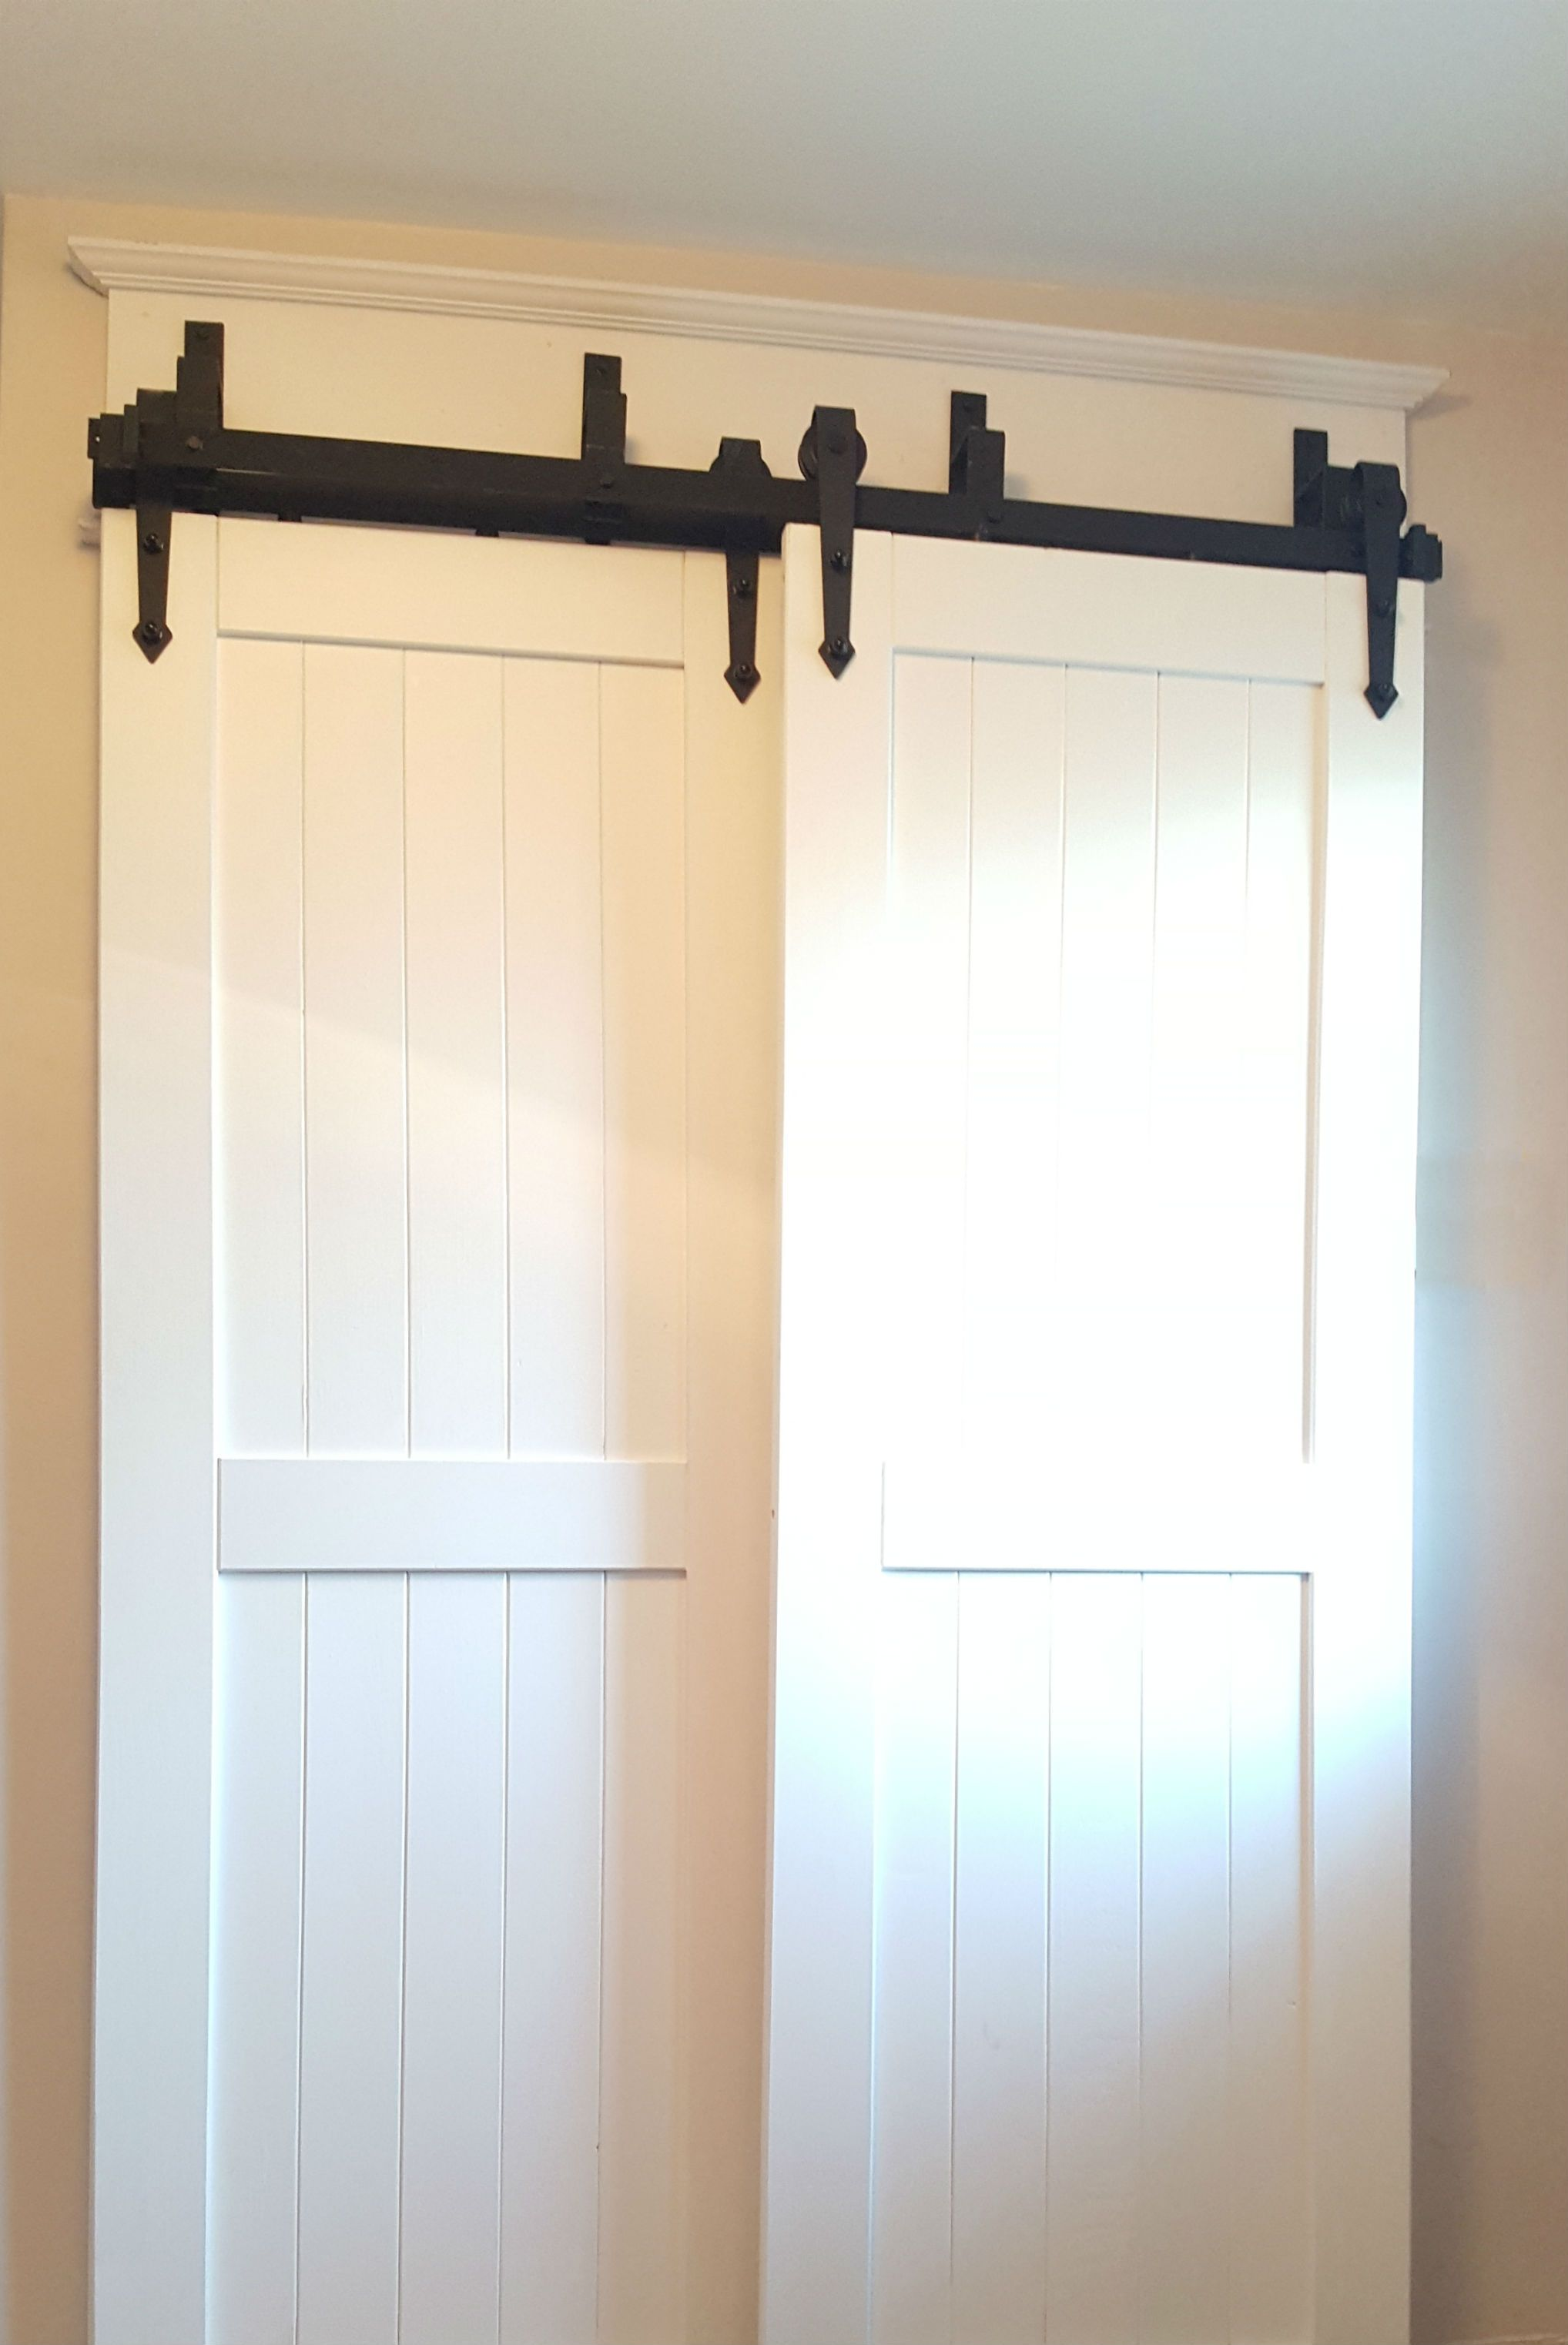 Bypass Barn Door Hardware bypass barn door hardware easy to install canada | hanging barn